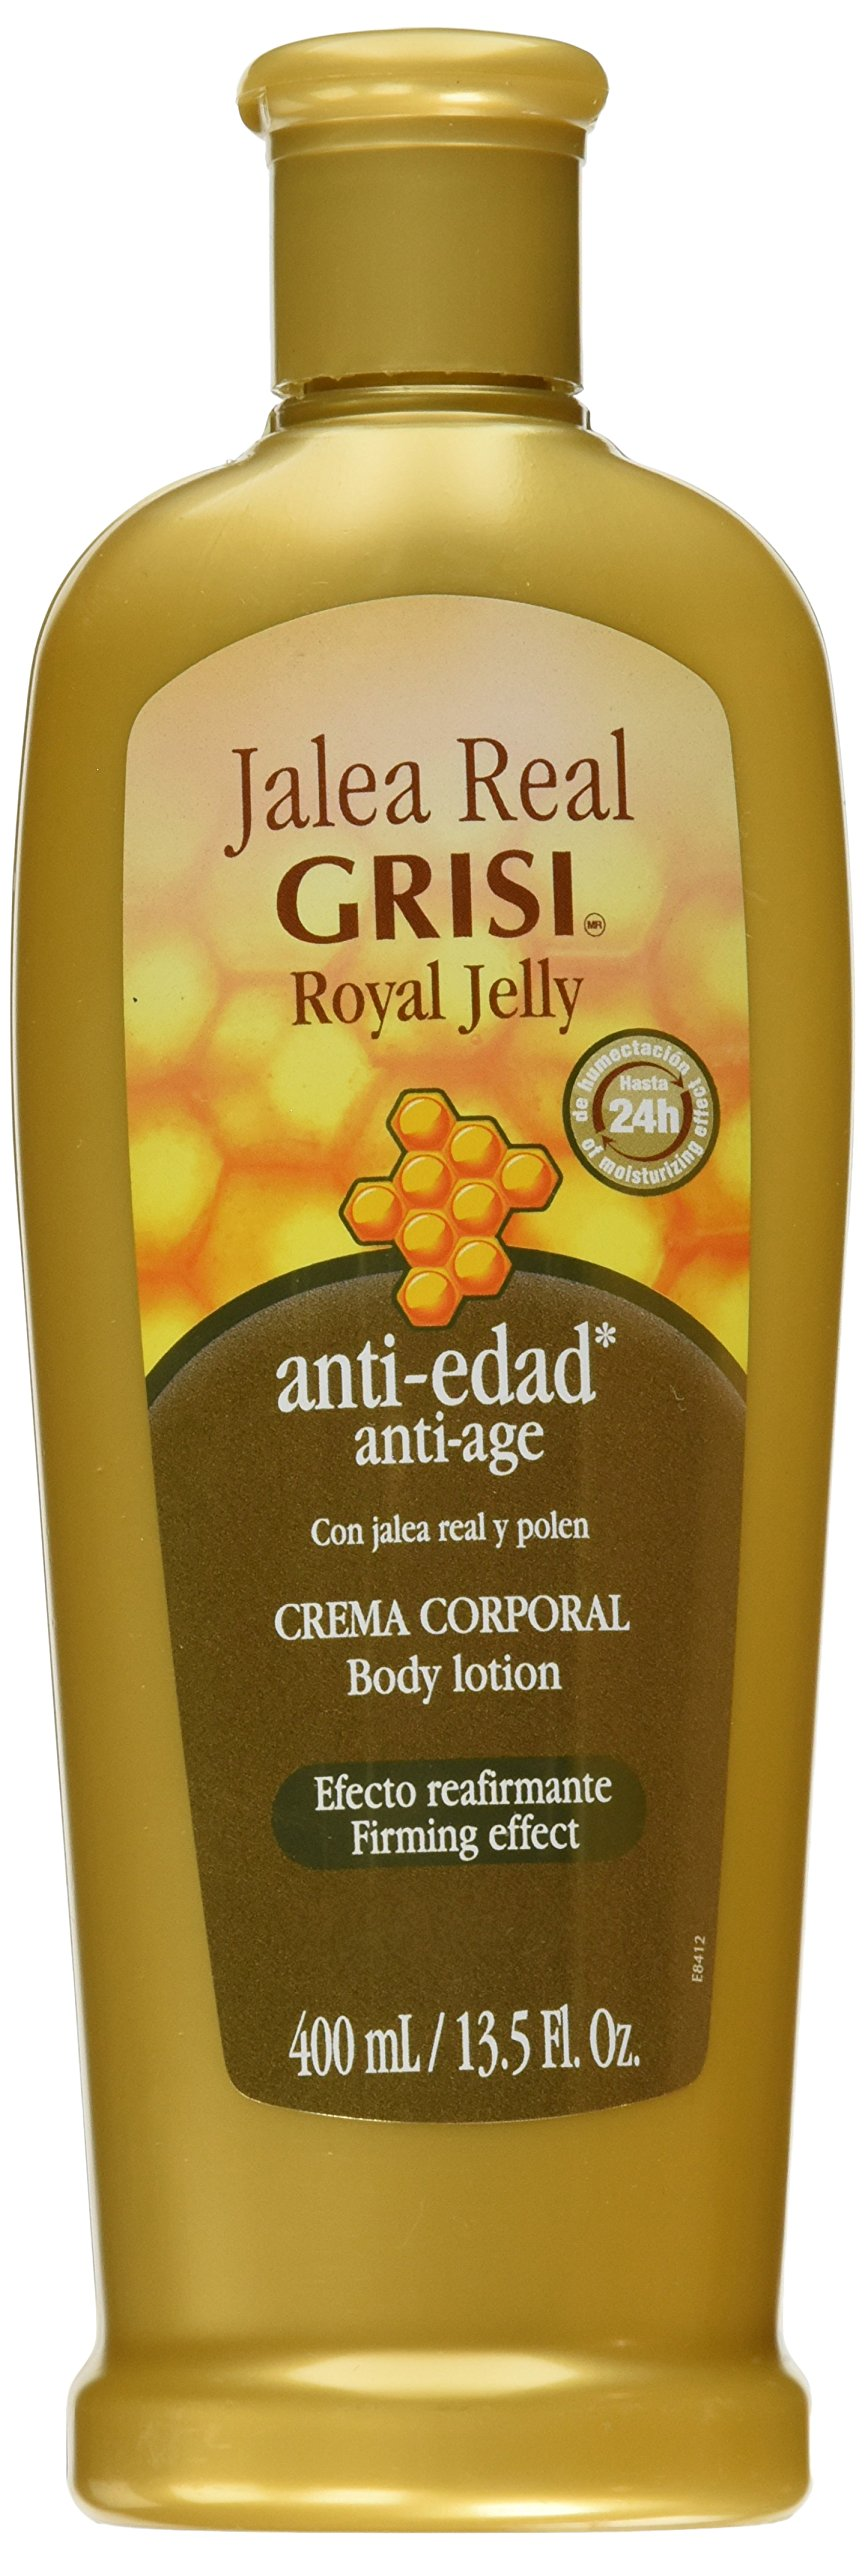 Royal Jelly Body Lotion by Grisi | Moisturizing Anti-Aging Skin Nourishment Body Lotion with